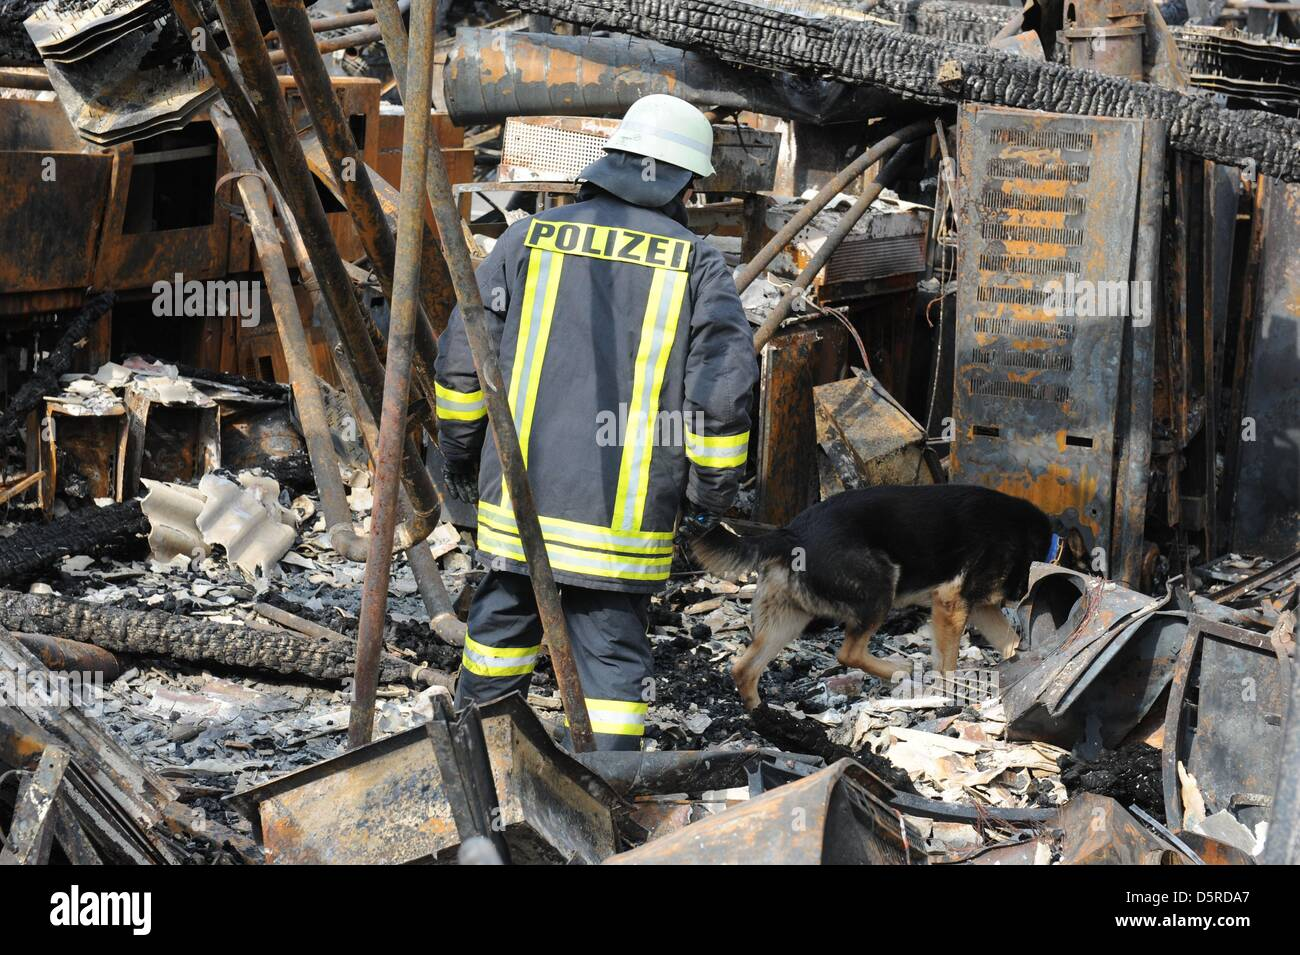 Police officer Peter Waerzner and sniffer dog Basko search for clues to the start of the fire the burned out Pallas - Stock Image